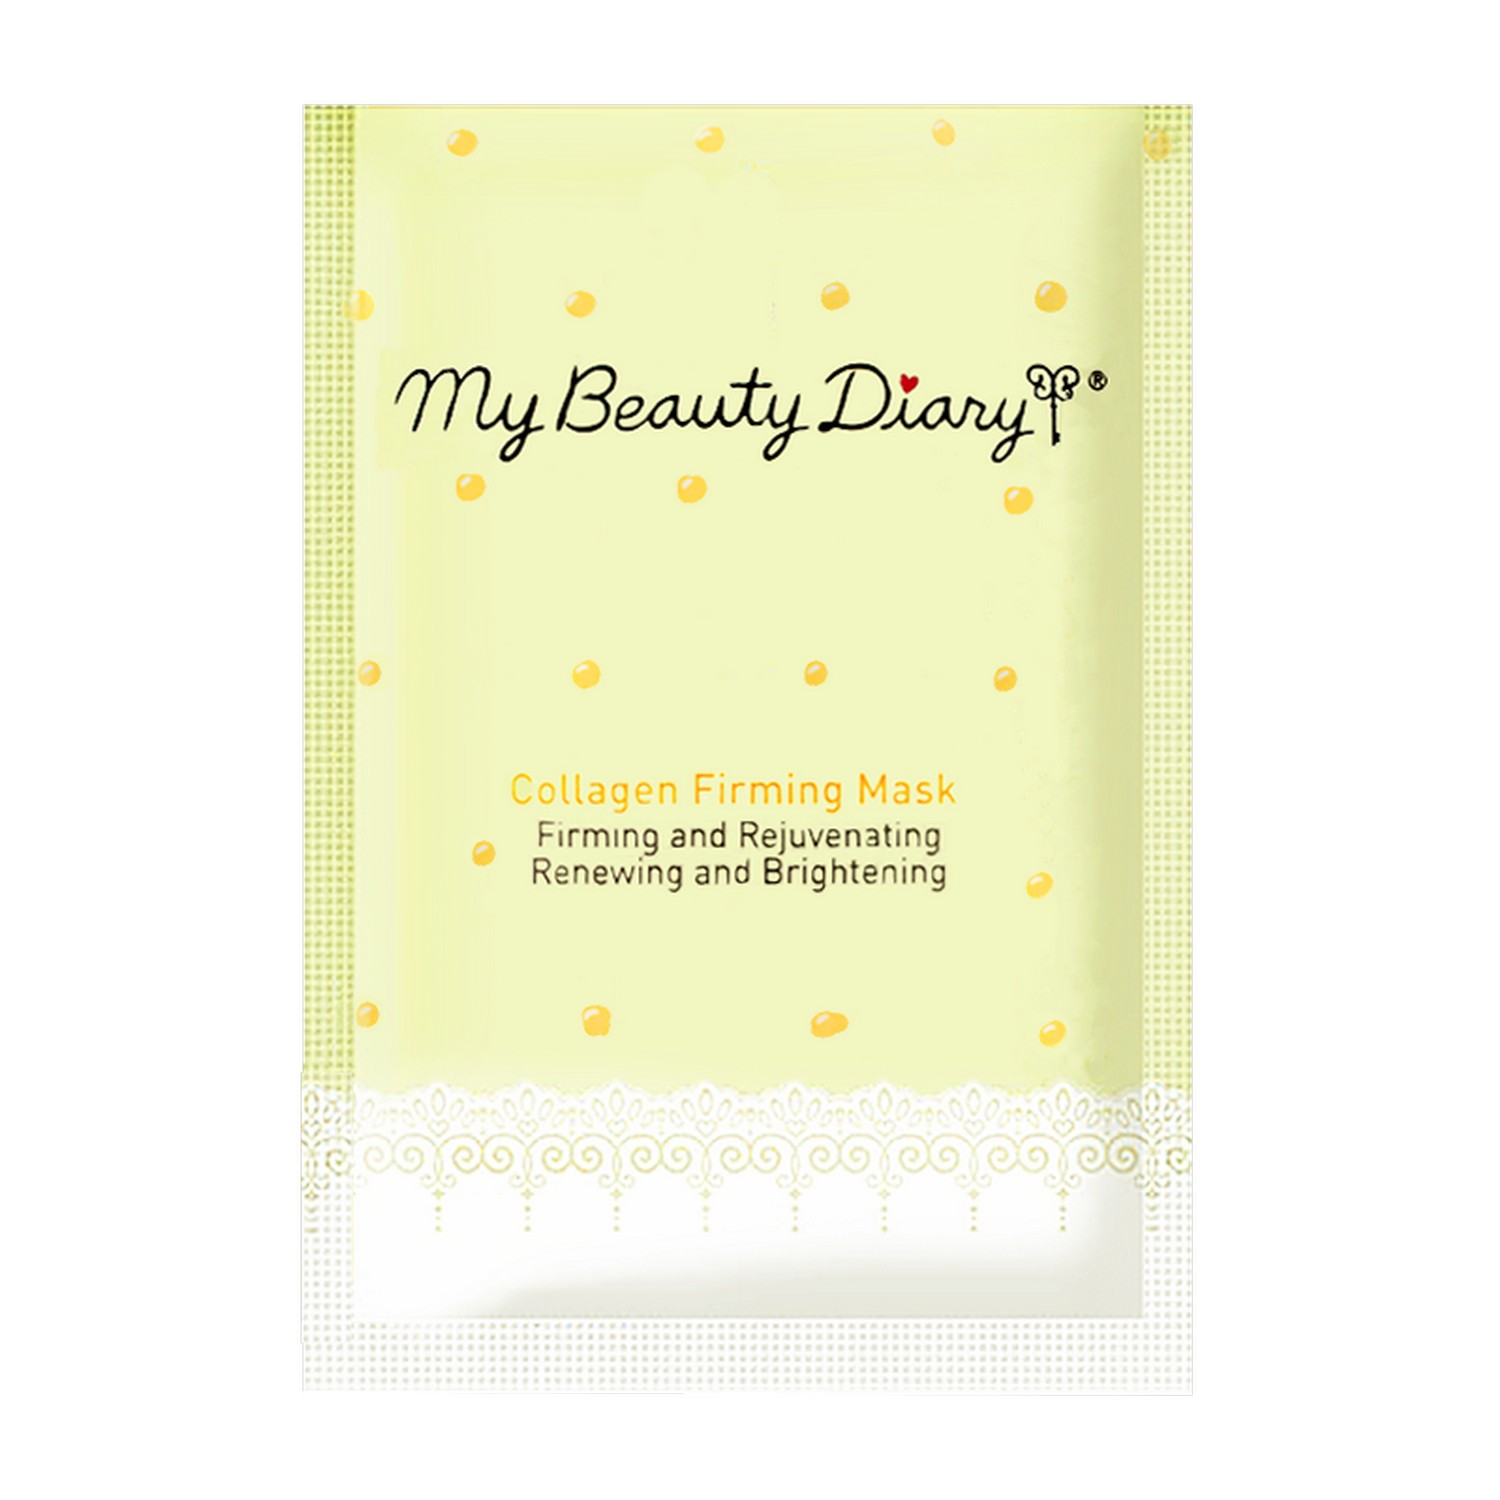 My Beauty Diary Collagen Firming Mask (10 pcs)